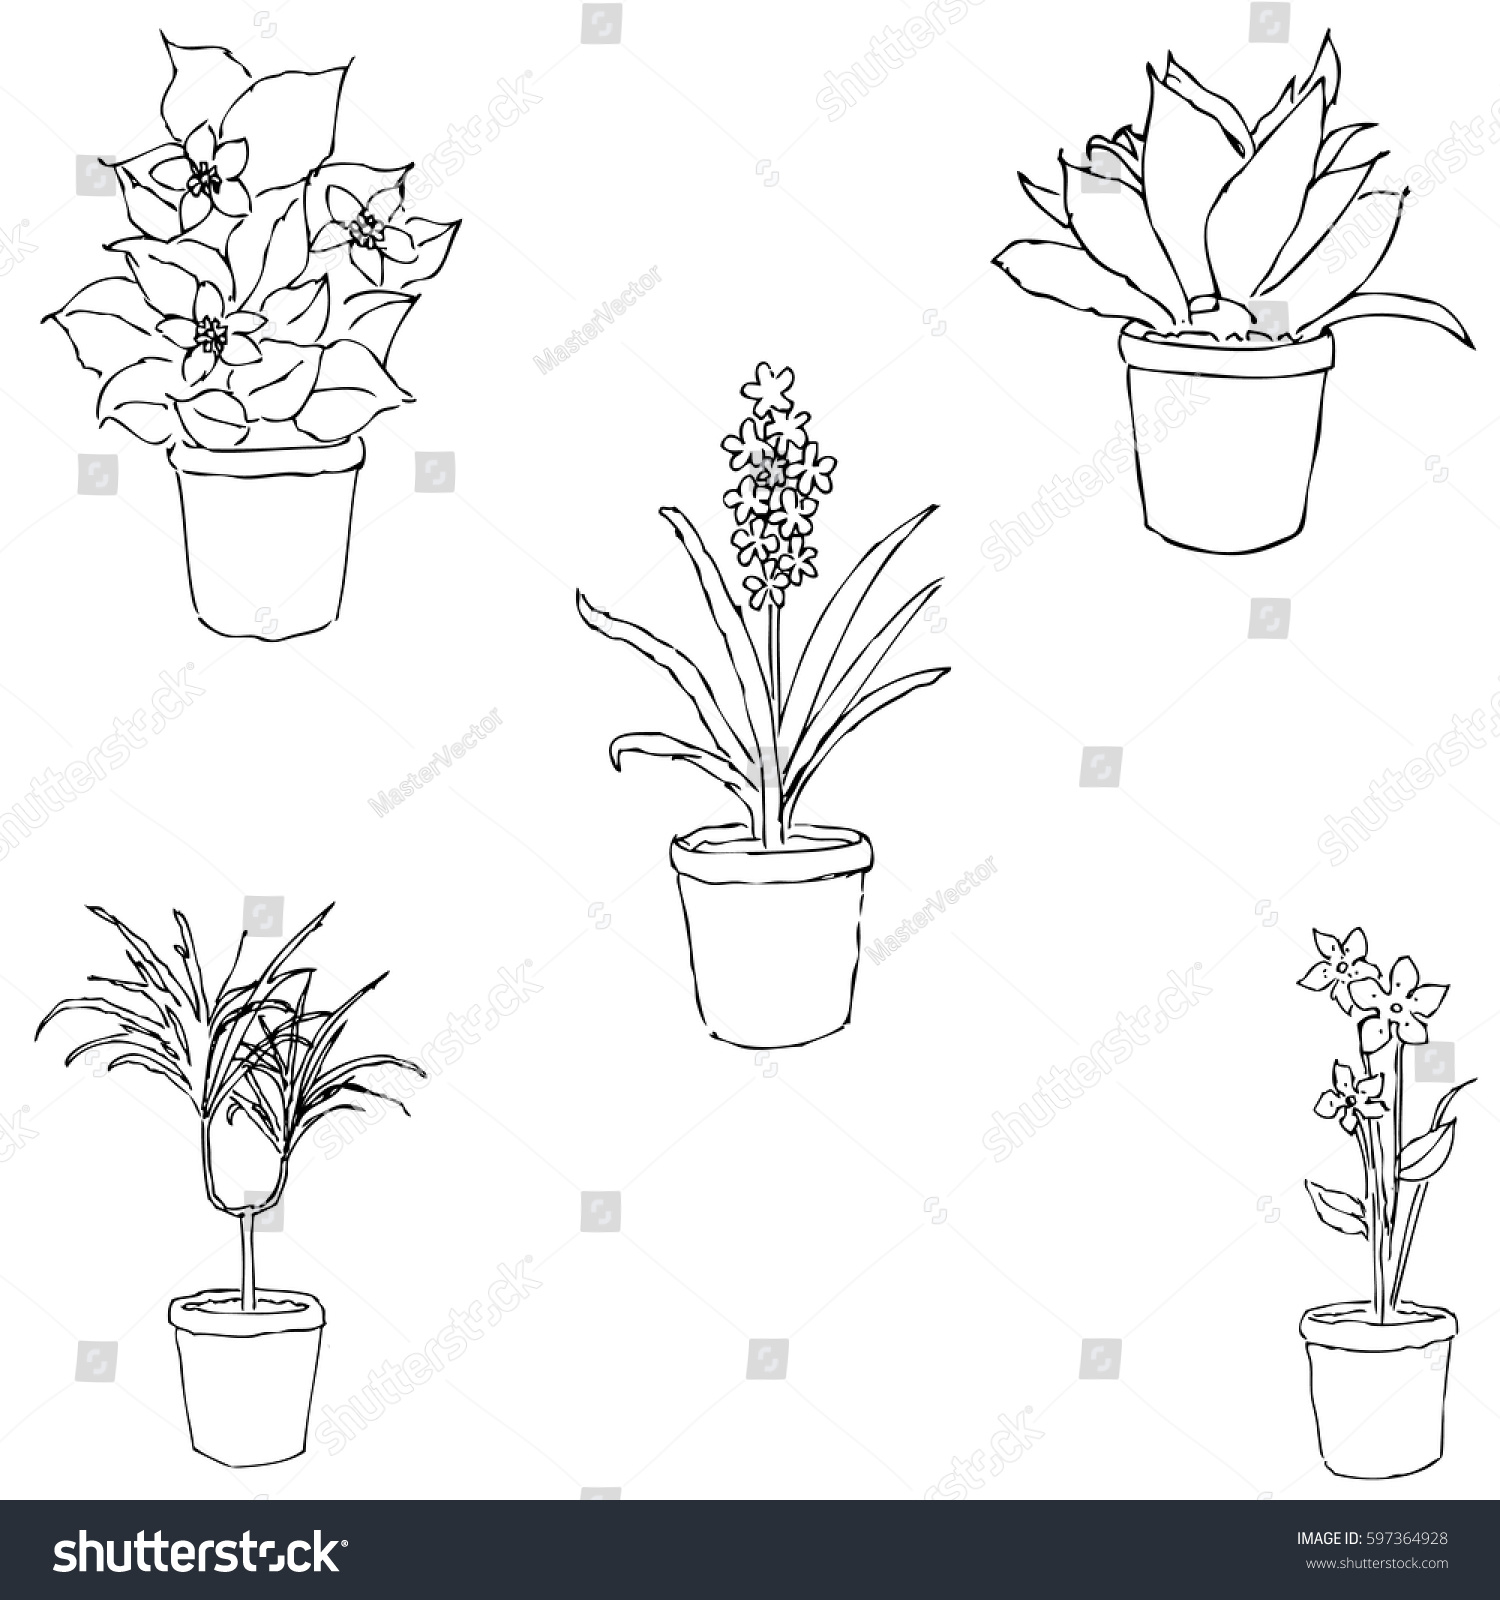 house plants drawing. houseplants sketch by hand pencil drawing vector image the house plants c